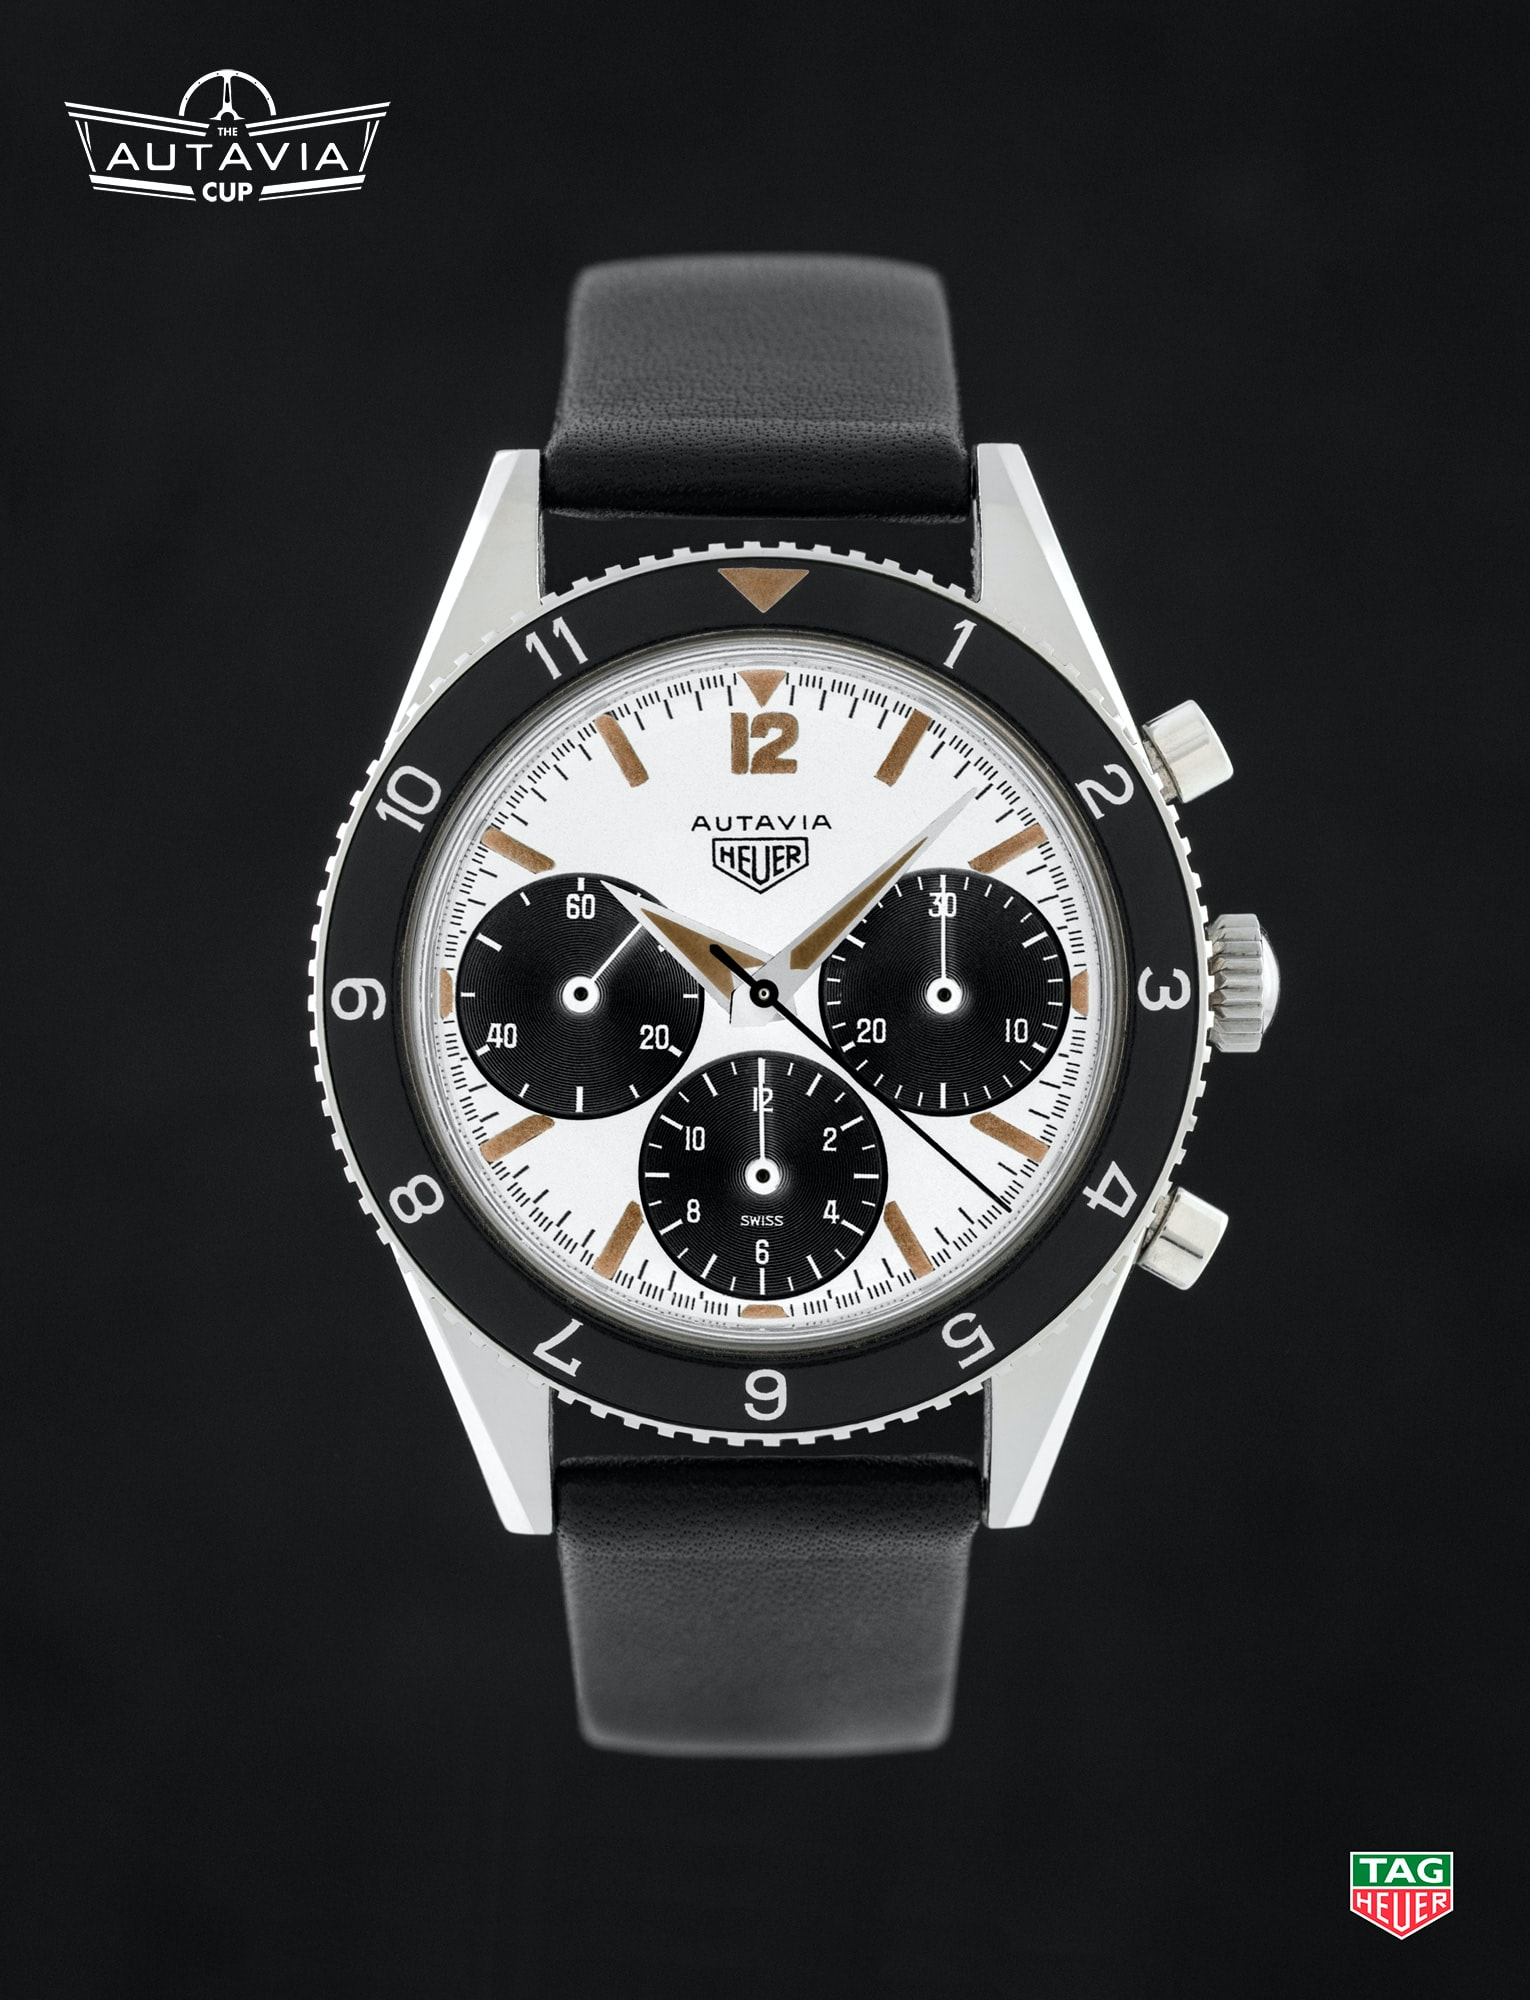 Heuer  TAG Heuer Will Relaunch The Autavia In 2017 – And Fans Get To Choose The Model TAG Heuer Will Relaunch The Autavia In 2017 – And Fans Get To Choose The Model 15 2446 Mk1 SN